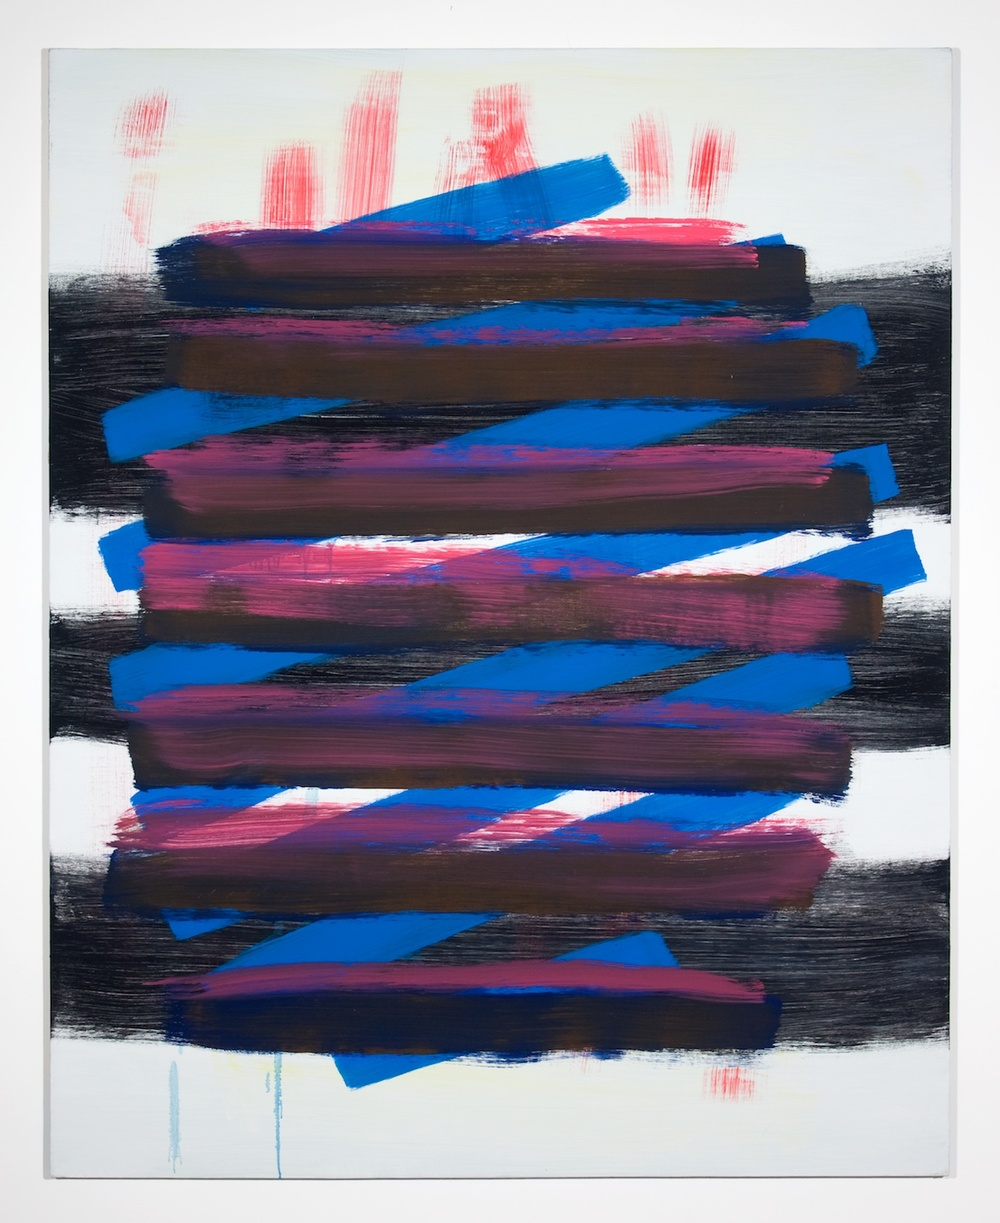 Jon Pestoni  Blue and Black Crossing  2010 Oil on canvas on panel 59 ¾h x 47 ½w in P036